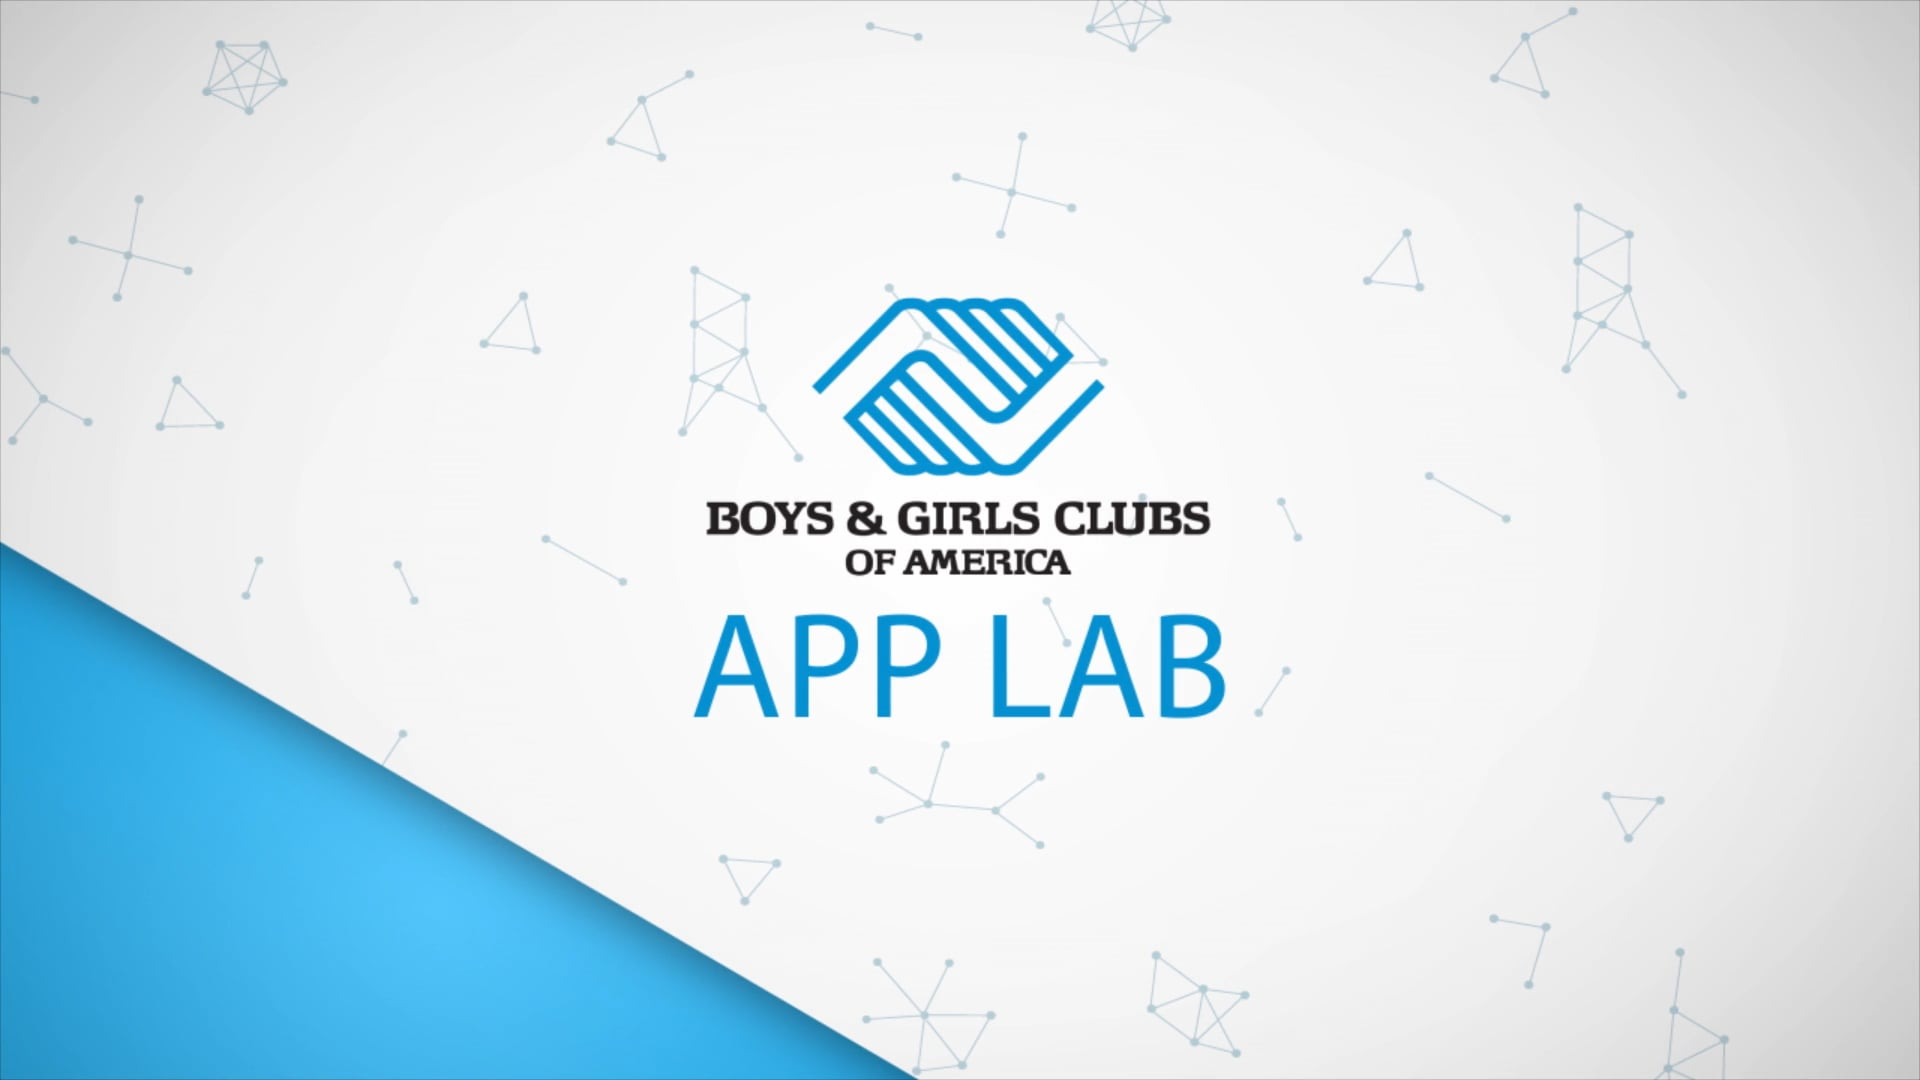 Boys & Girls Clubs of America: AppLab (2016) Directed by Jose A. Acosta.